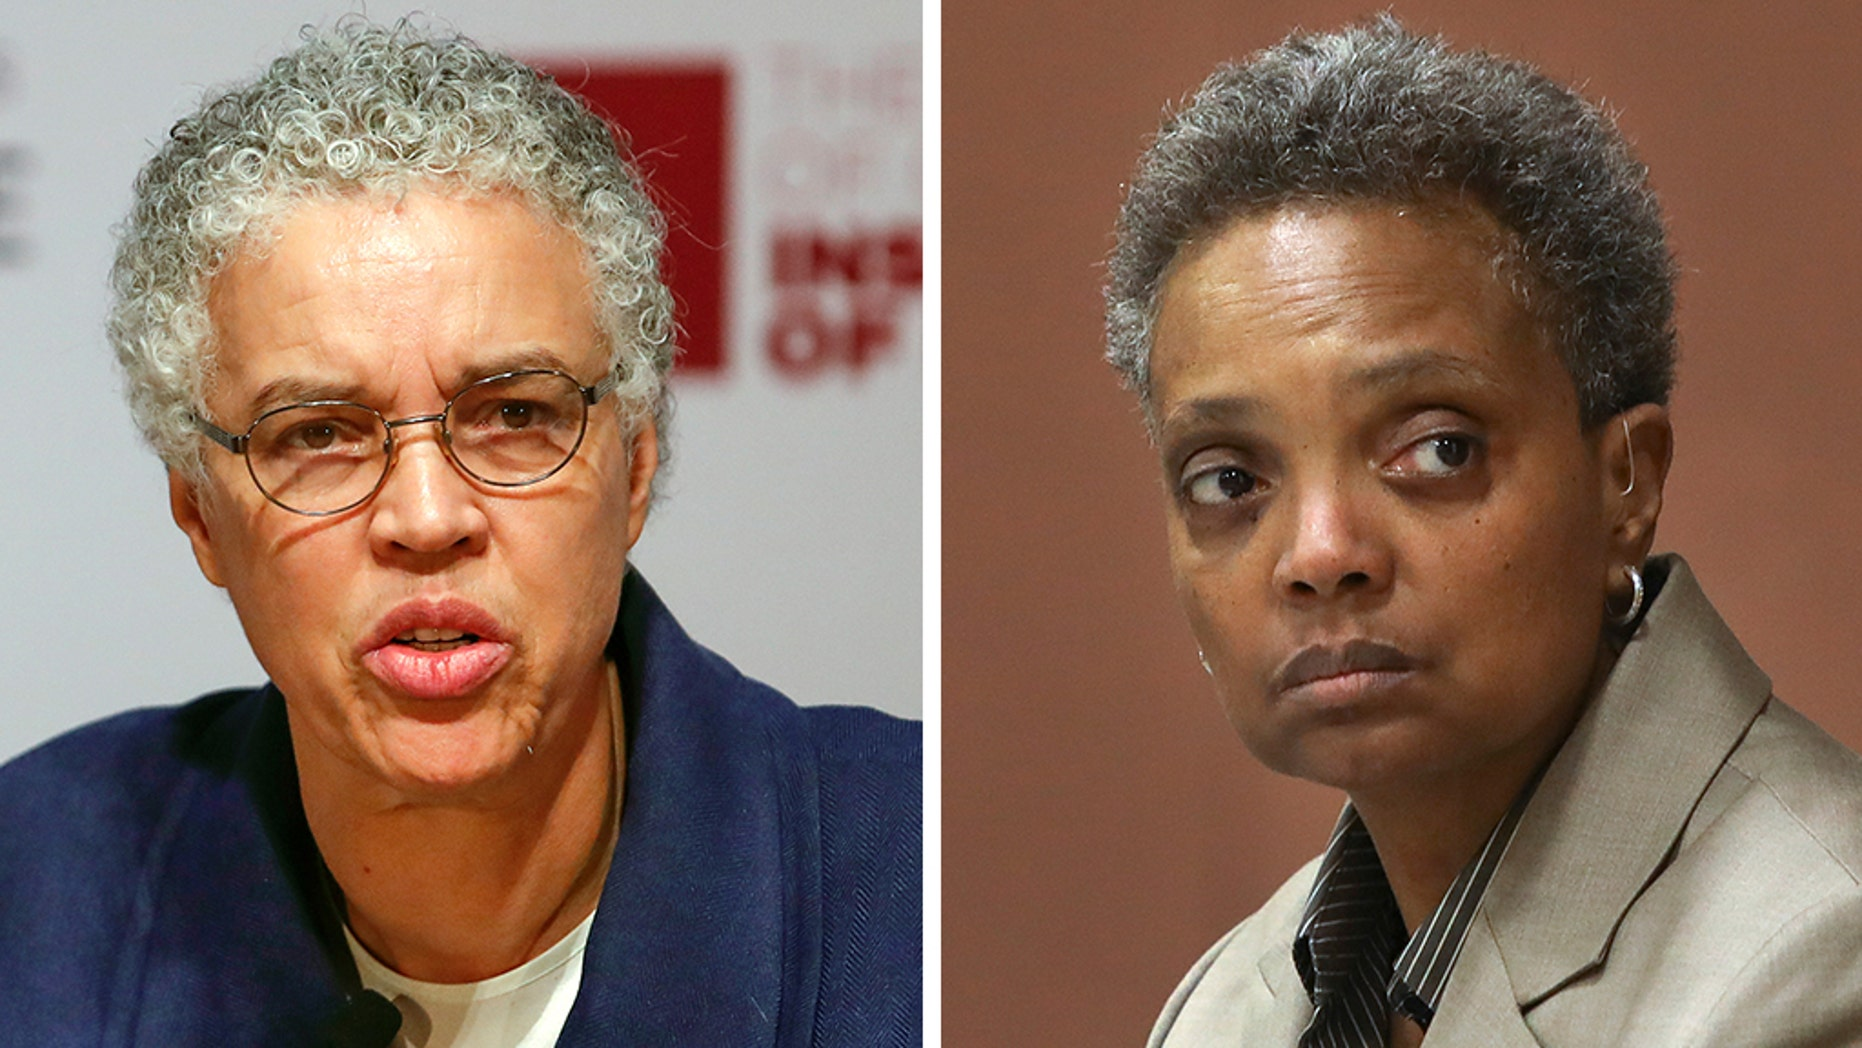 Lori Lightfoot, right, was projected to defeat Toni Preckwinkle in the race for Chicago mayor.